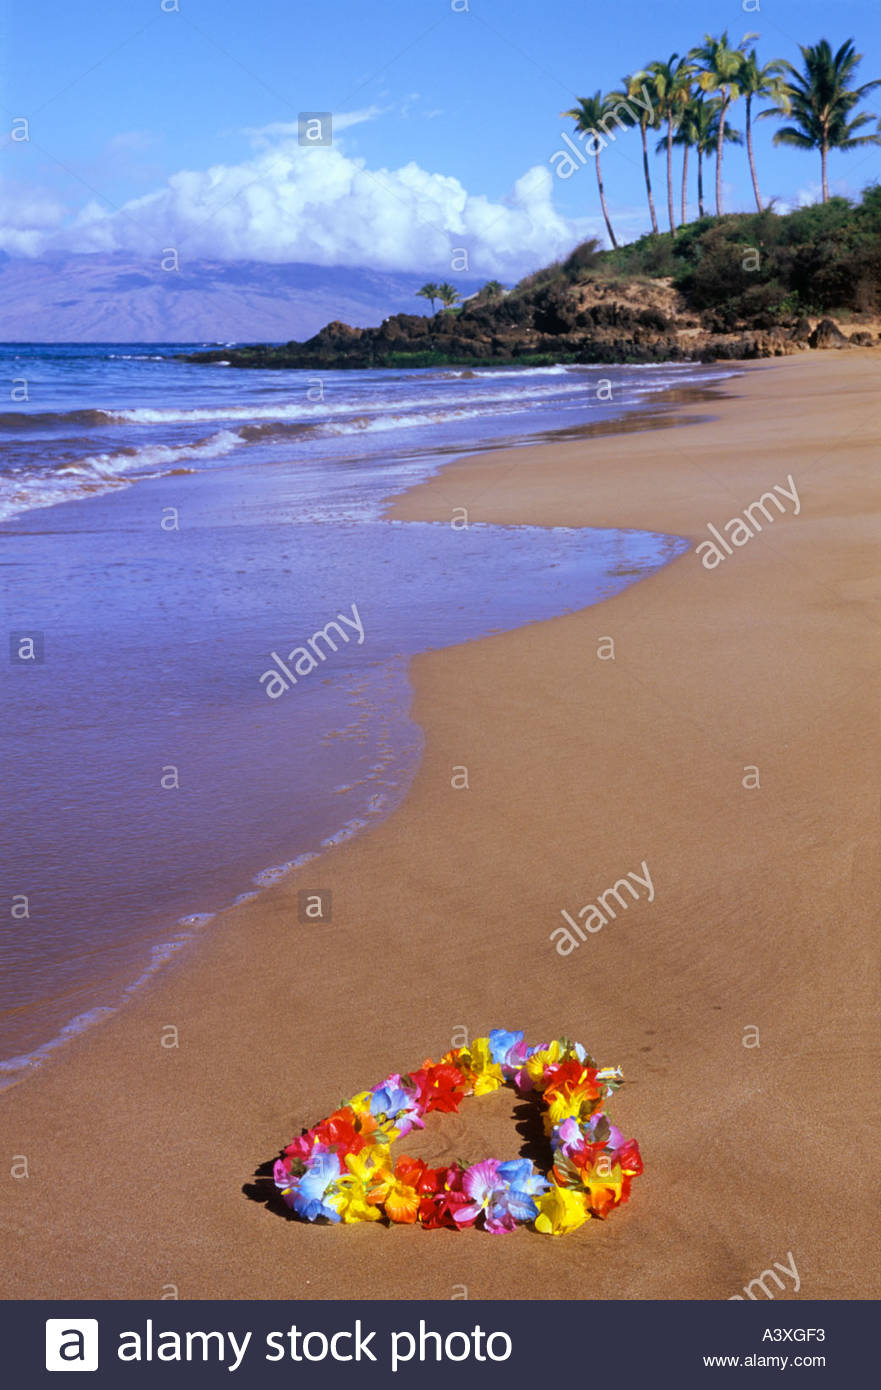 Flower garland or lei on the beach at Wailea on the island of Maui in the state of Hawaii USA - Stock Image